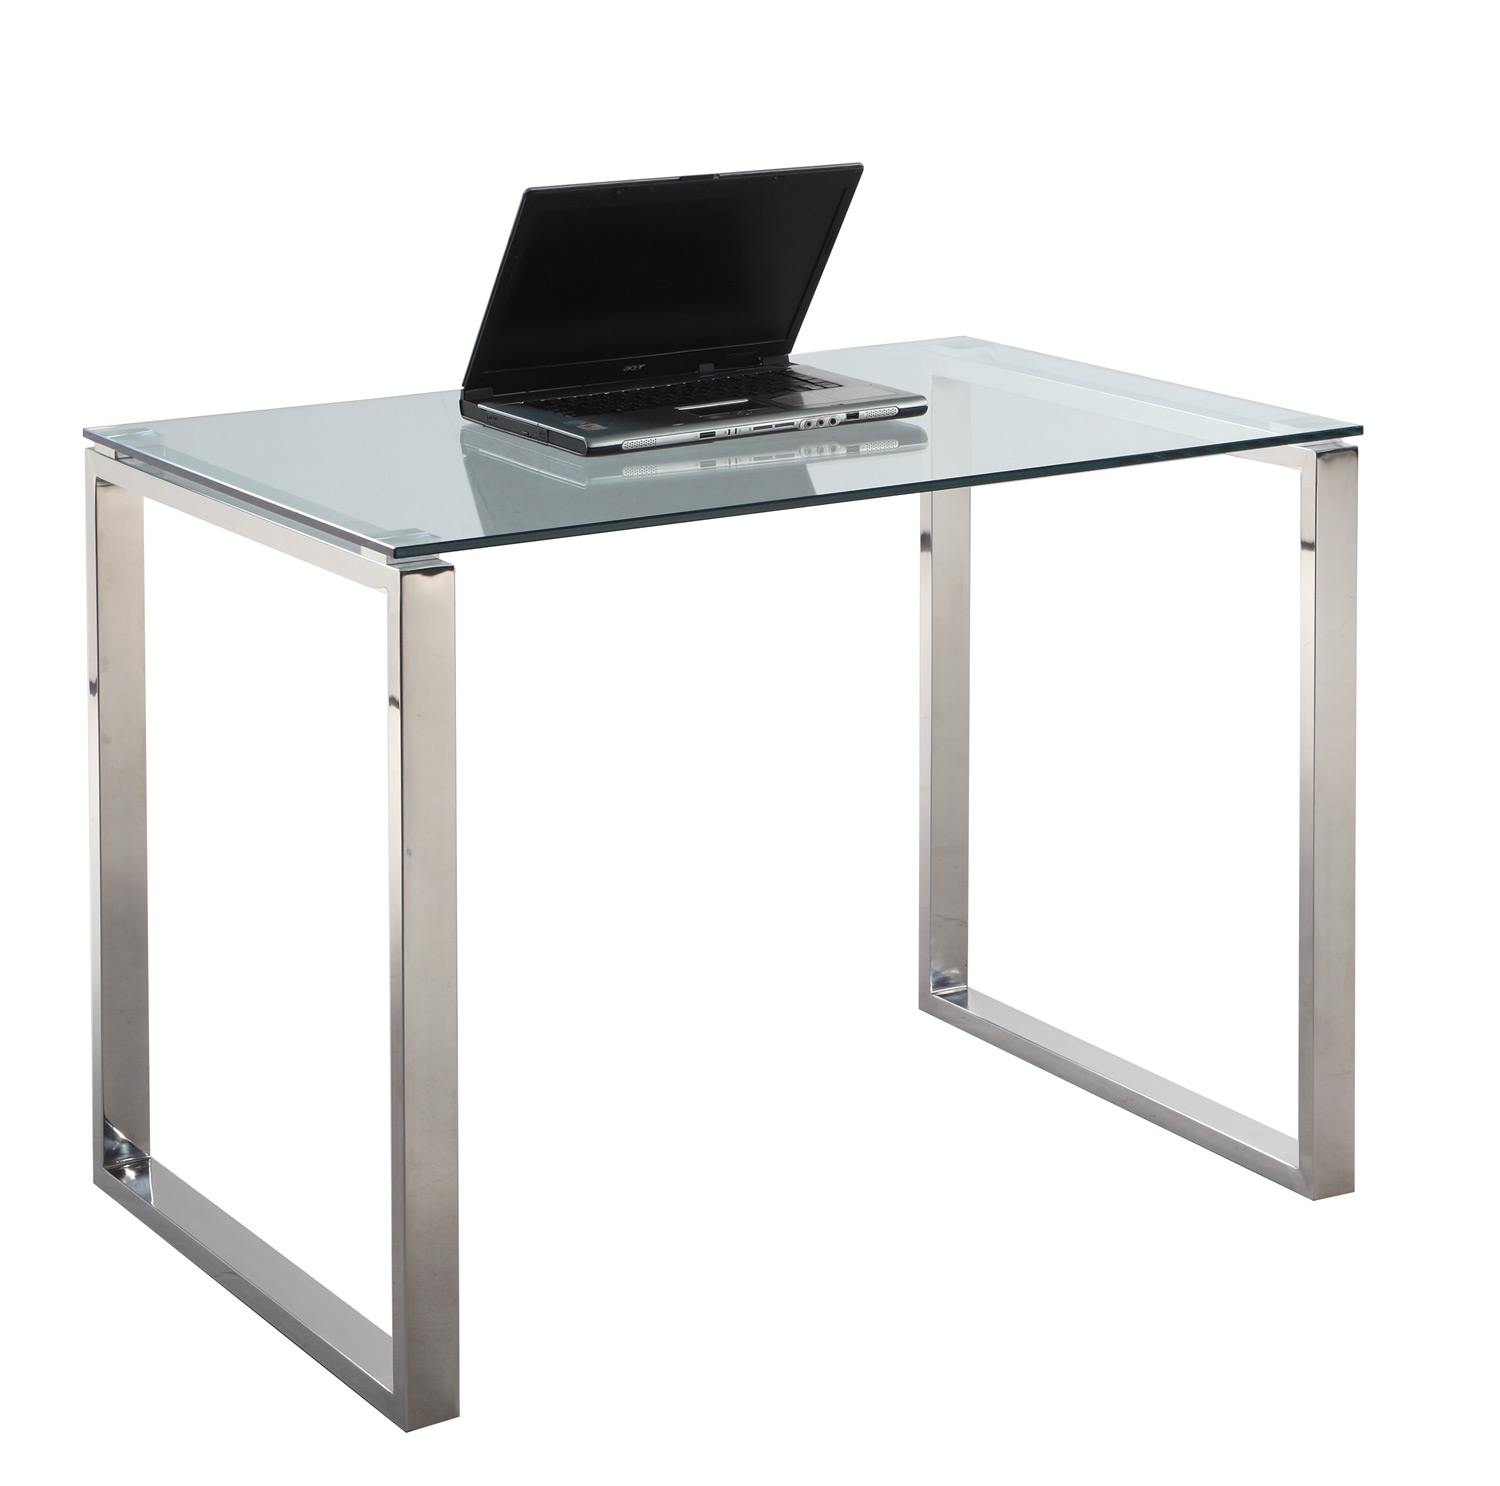 #6F665C  Imports 6931 Small Computer Desk Table Clear Glass/Stainless Steel with 1500x1486 px of Most Effective Small Glass Desks 14861500 wallpaper @ avoidforclosure.info